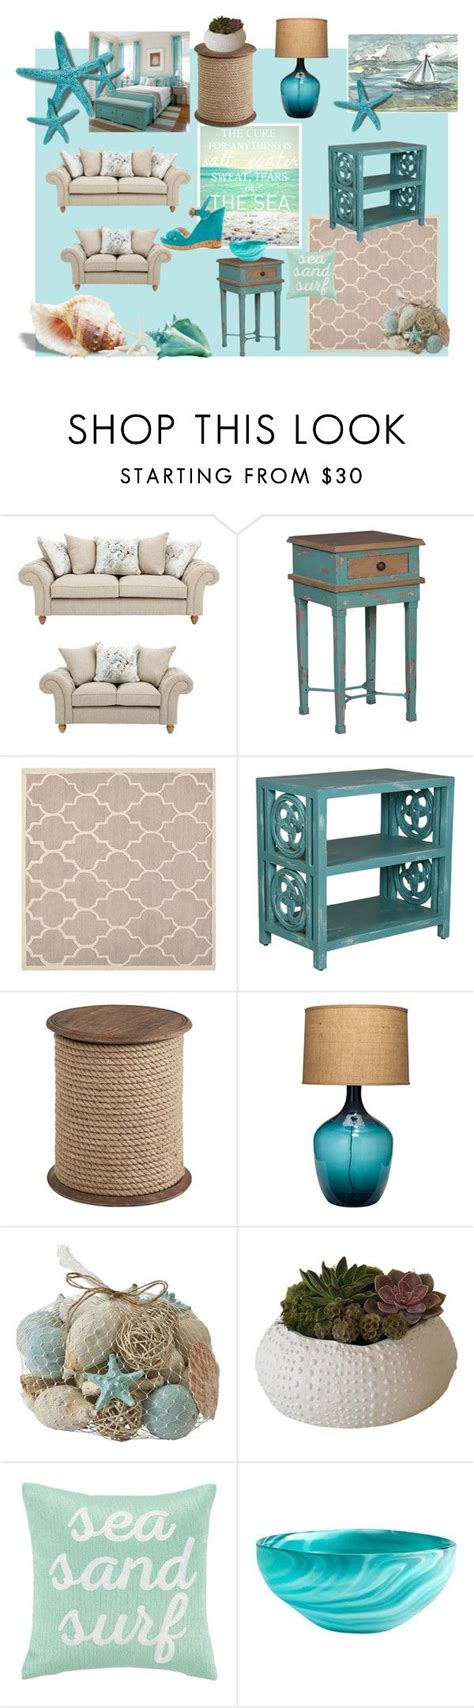 importers of home decor de 25 mest popul 230 re id 233 er om pier 1 imports p 229 pinterest